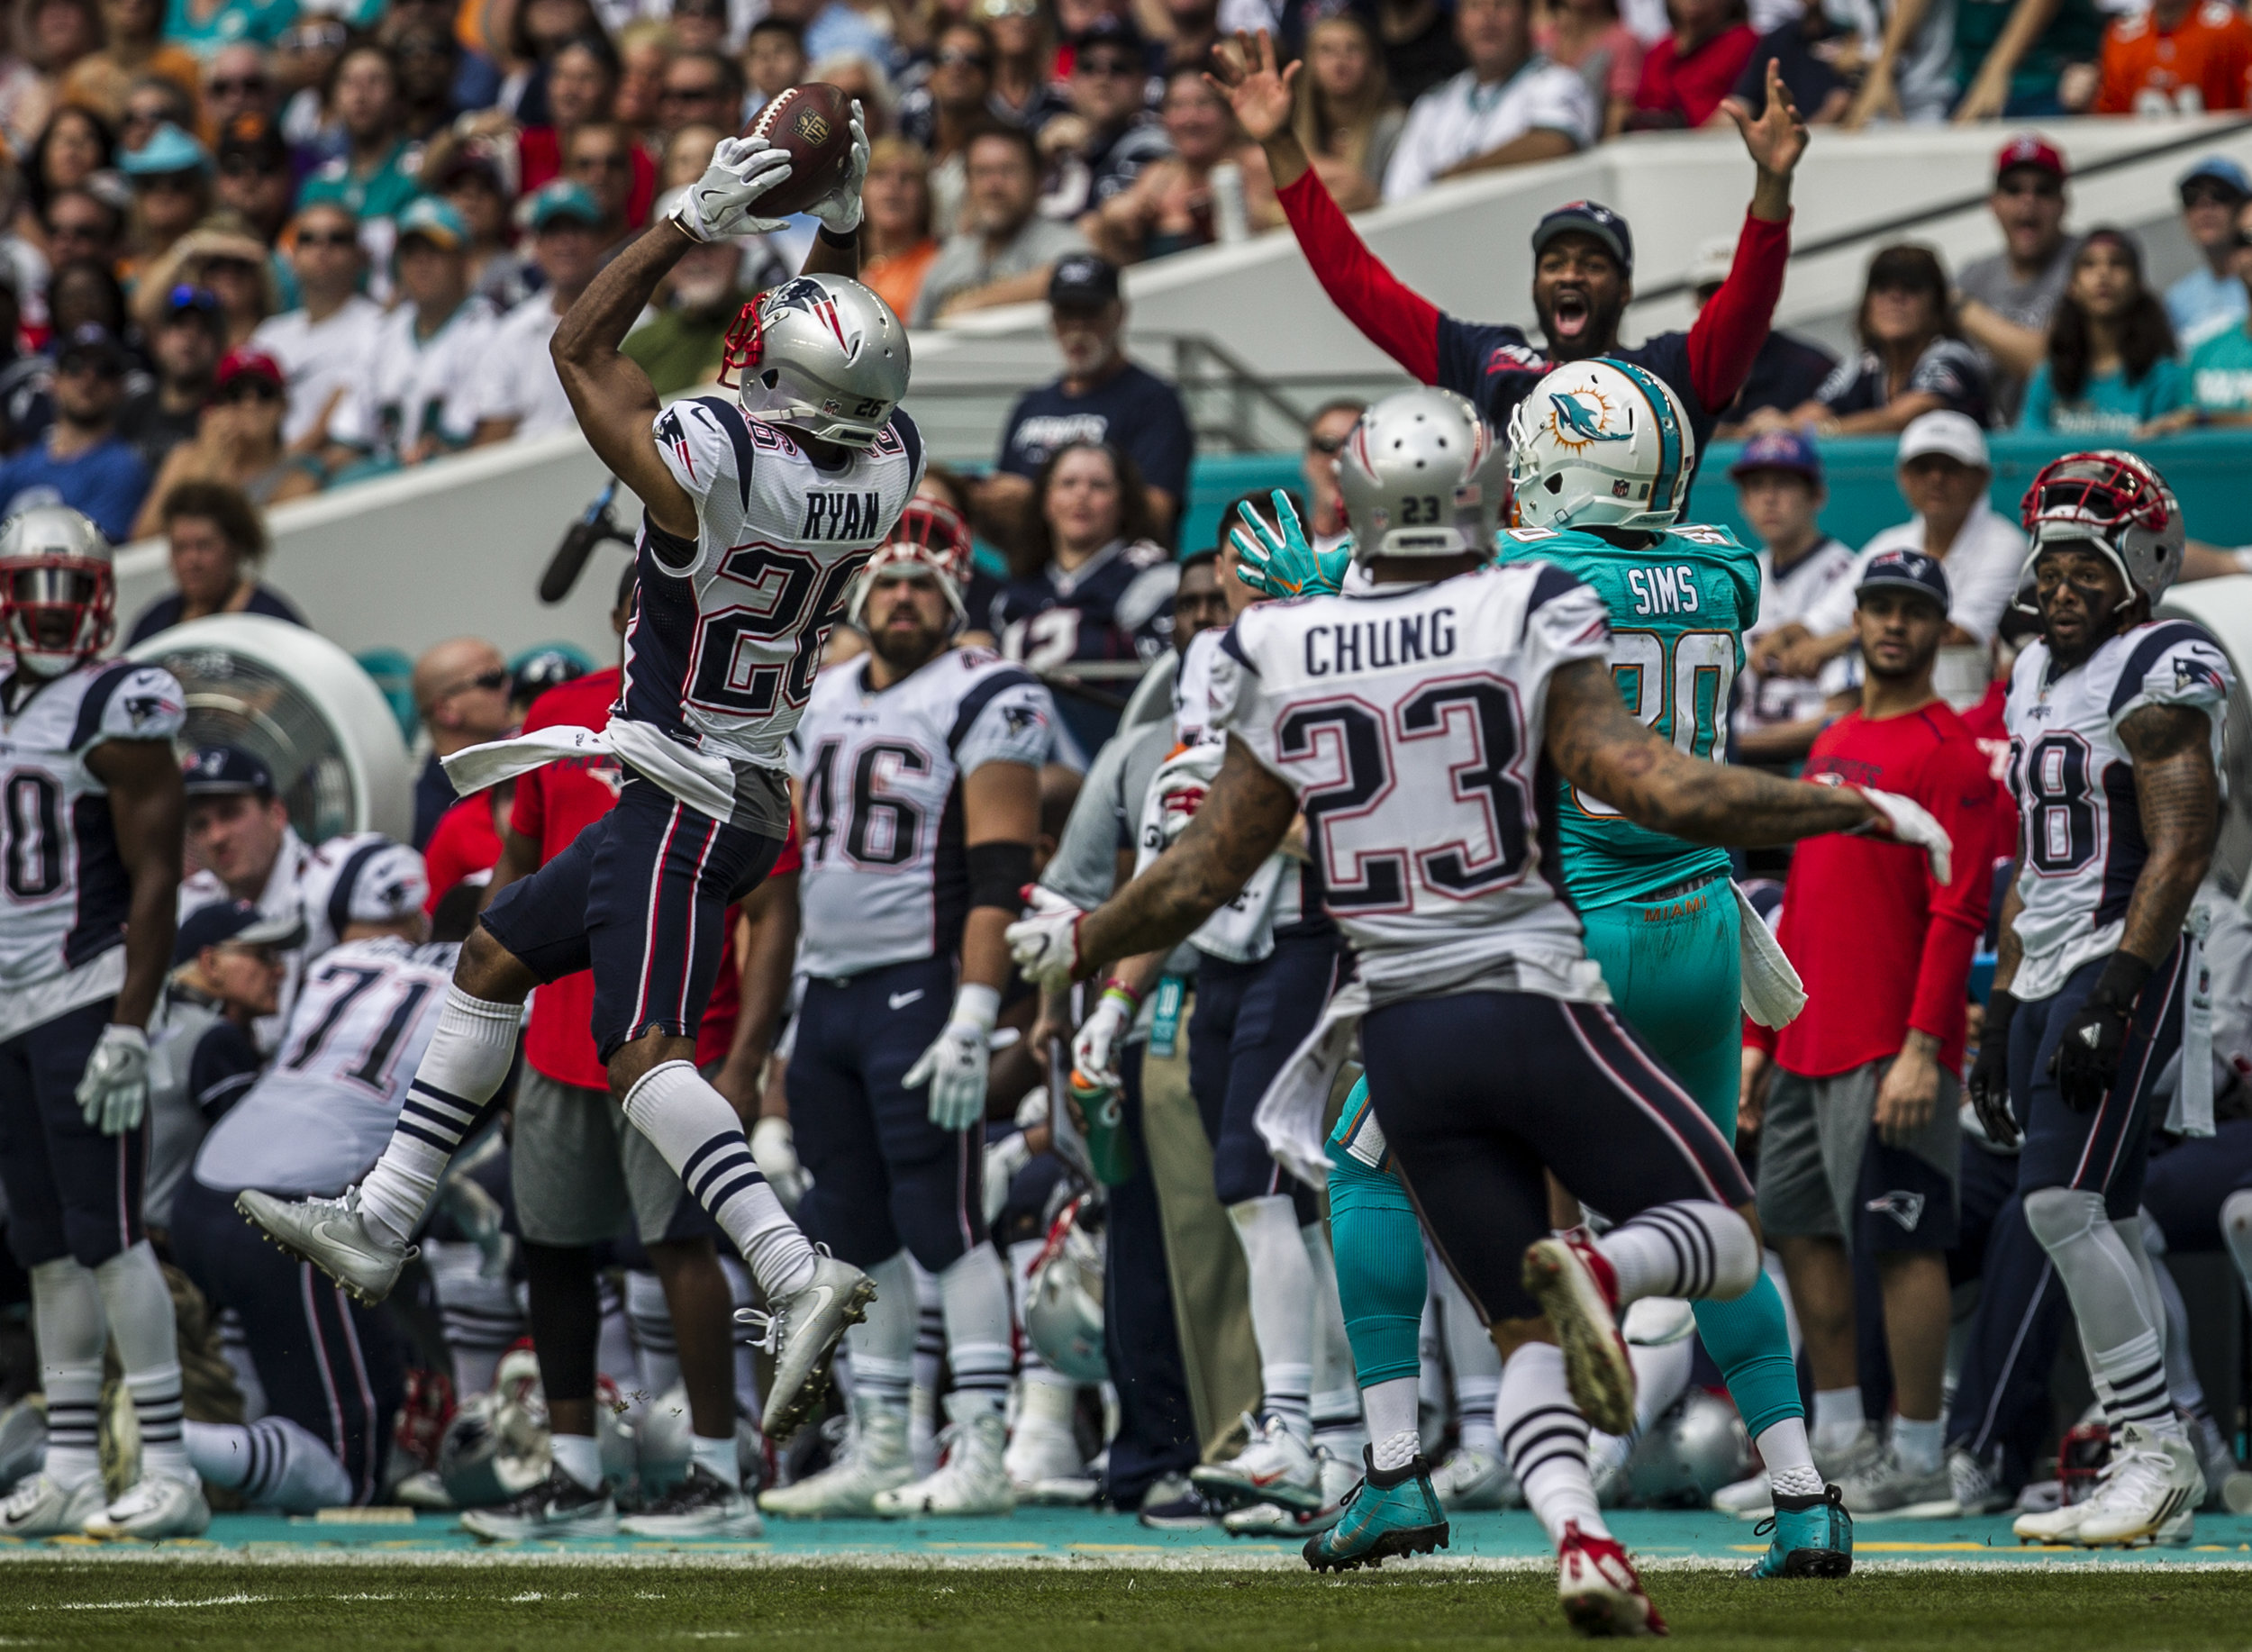 New England Patriots cornerback Logan Ryan (26) intercepts a pass intended for Miami Dolphins tight end Dion Sims (80) as the Patriots sideline celebrates at Hard Rock Stadium in Miami Gardens, Florida, January 1, 2017.